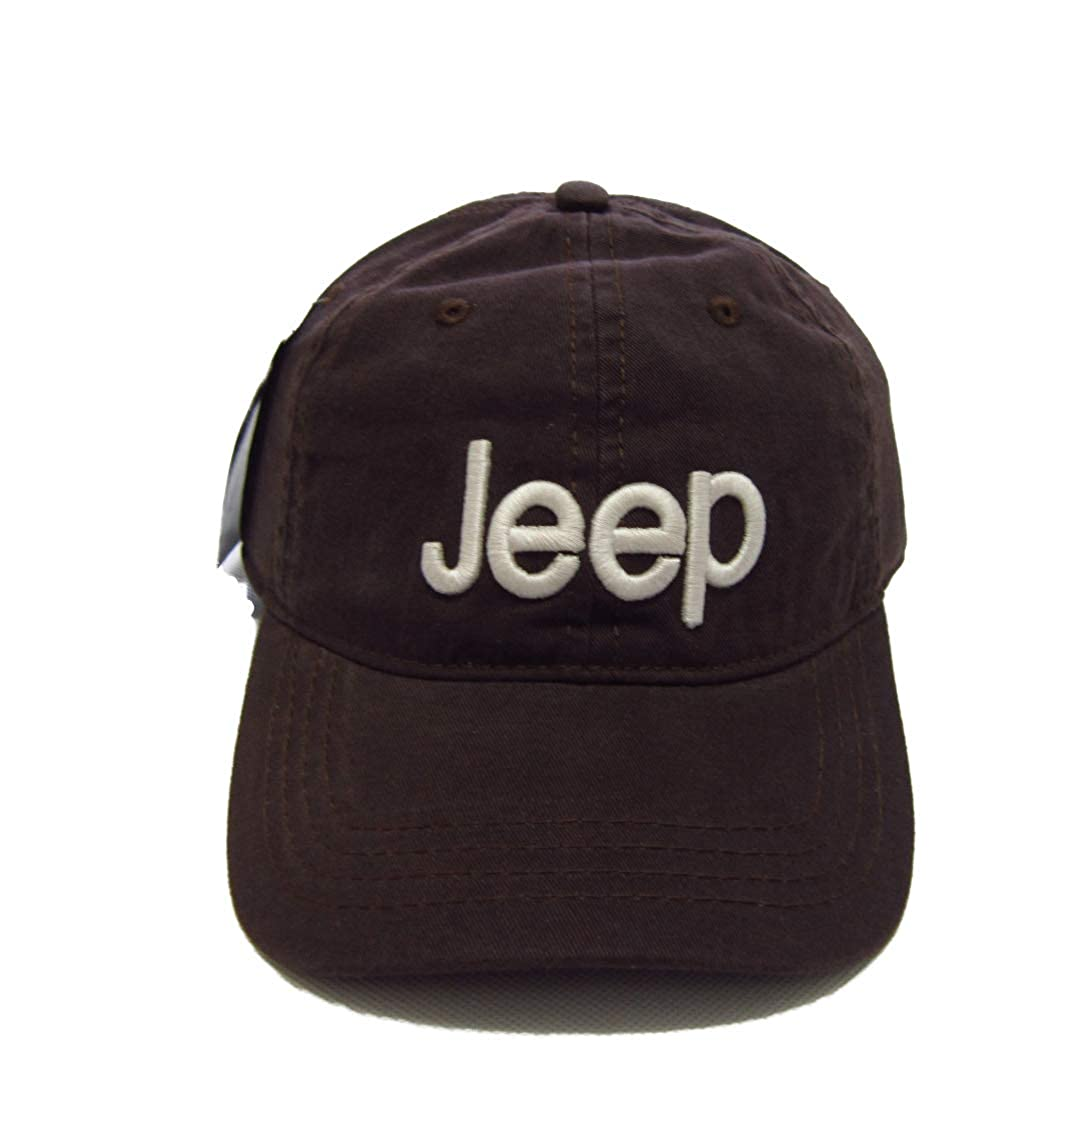 Jeep Unisex Solid Color Adjustable Cutton Baseball Cap Outdoor Sunhat with Front Logo